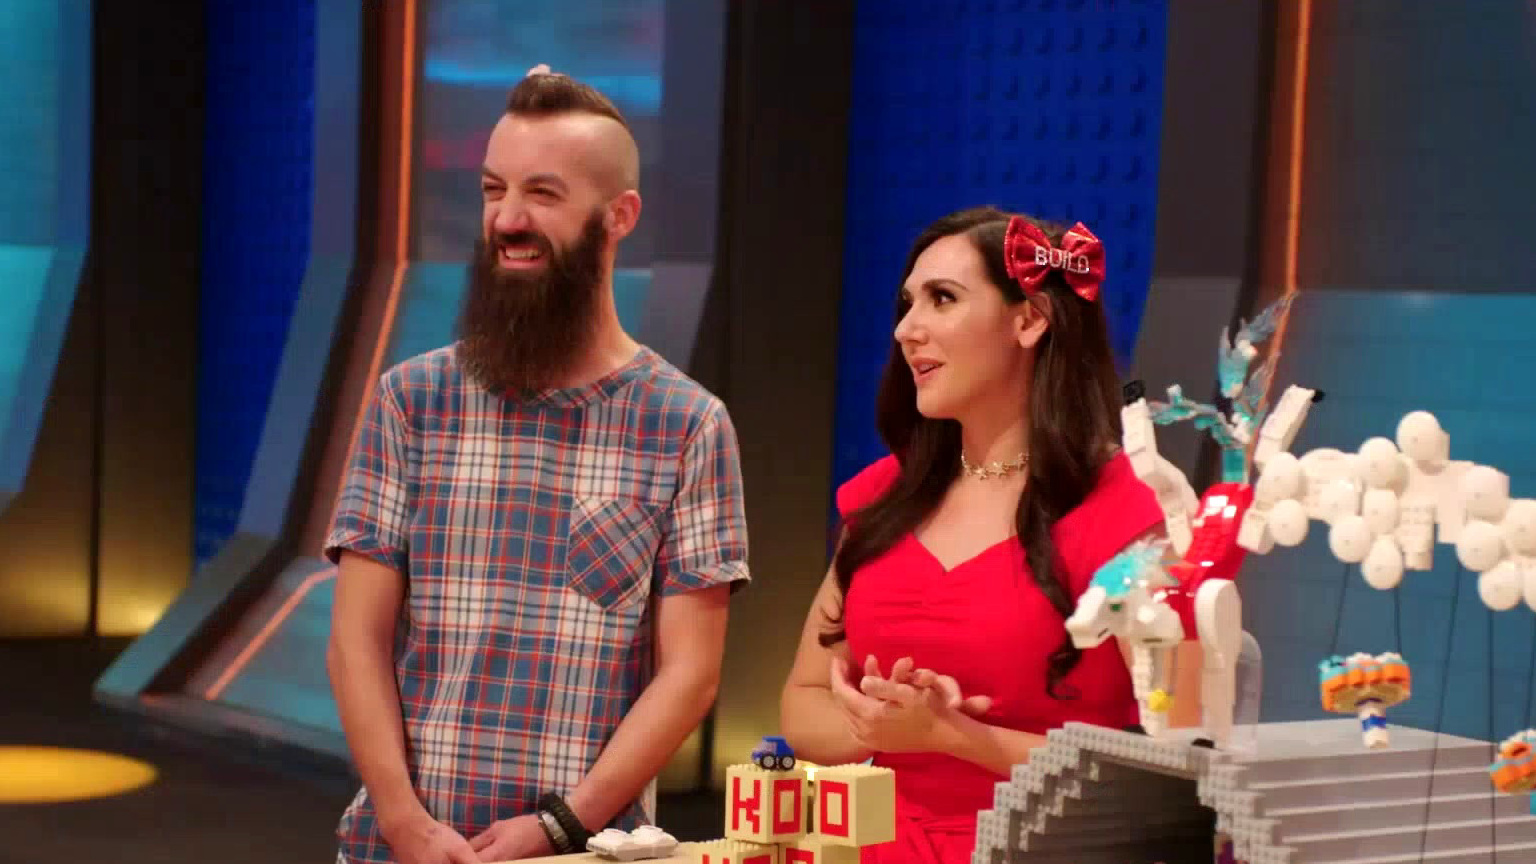 Lego Masters: The Judges Are Impressed With Sam & Jessica